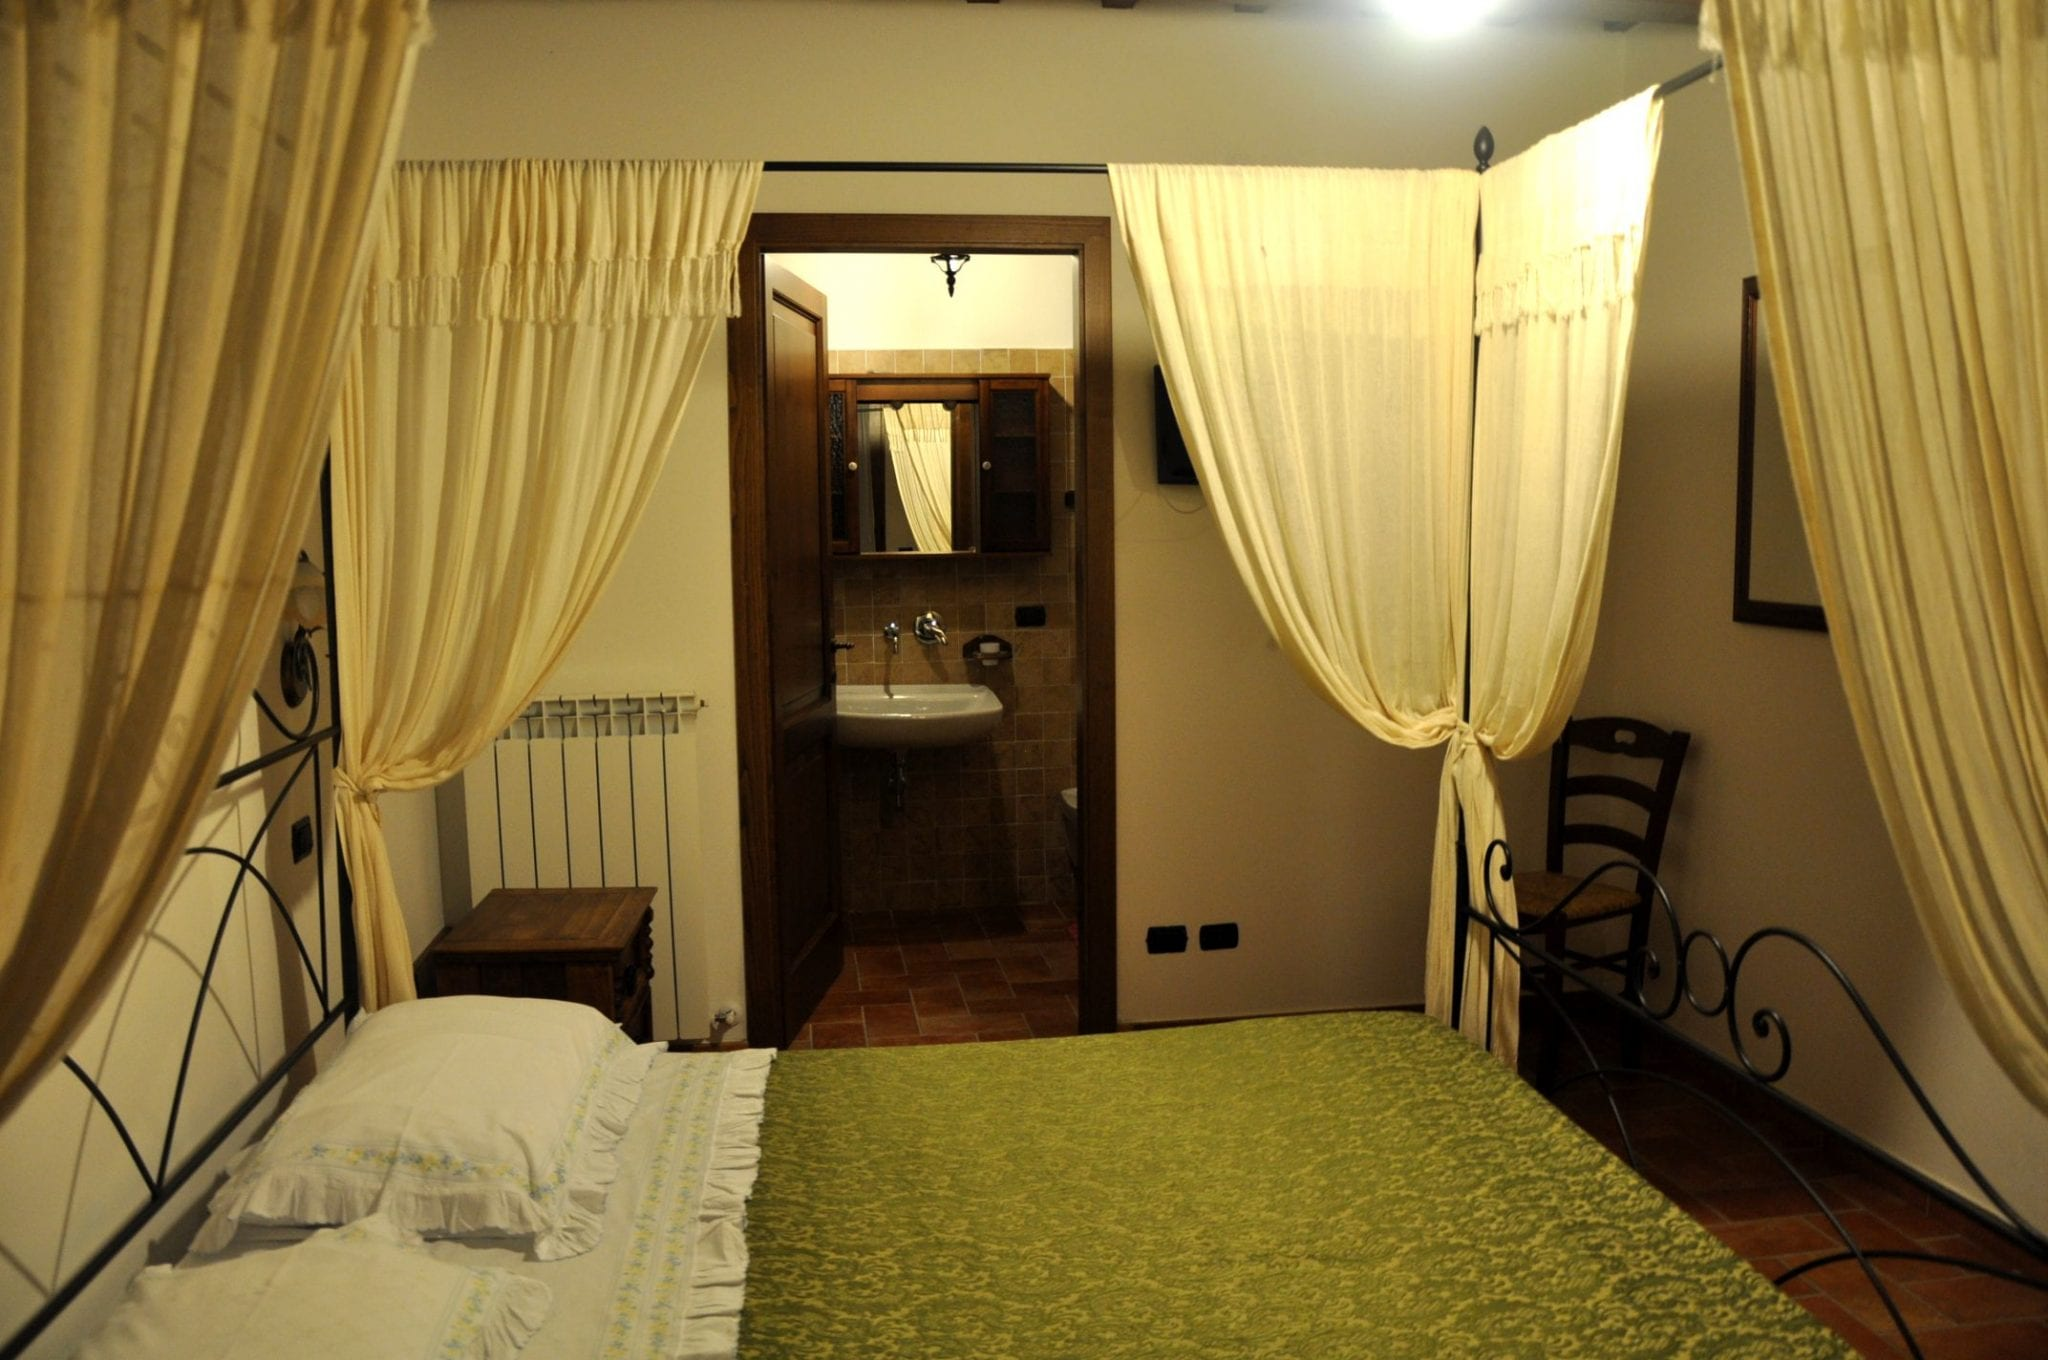 Accommodation at an Italian farm-stay